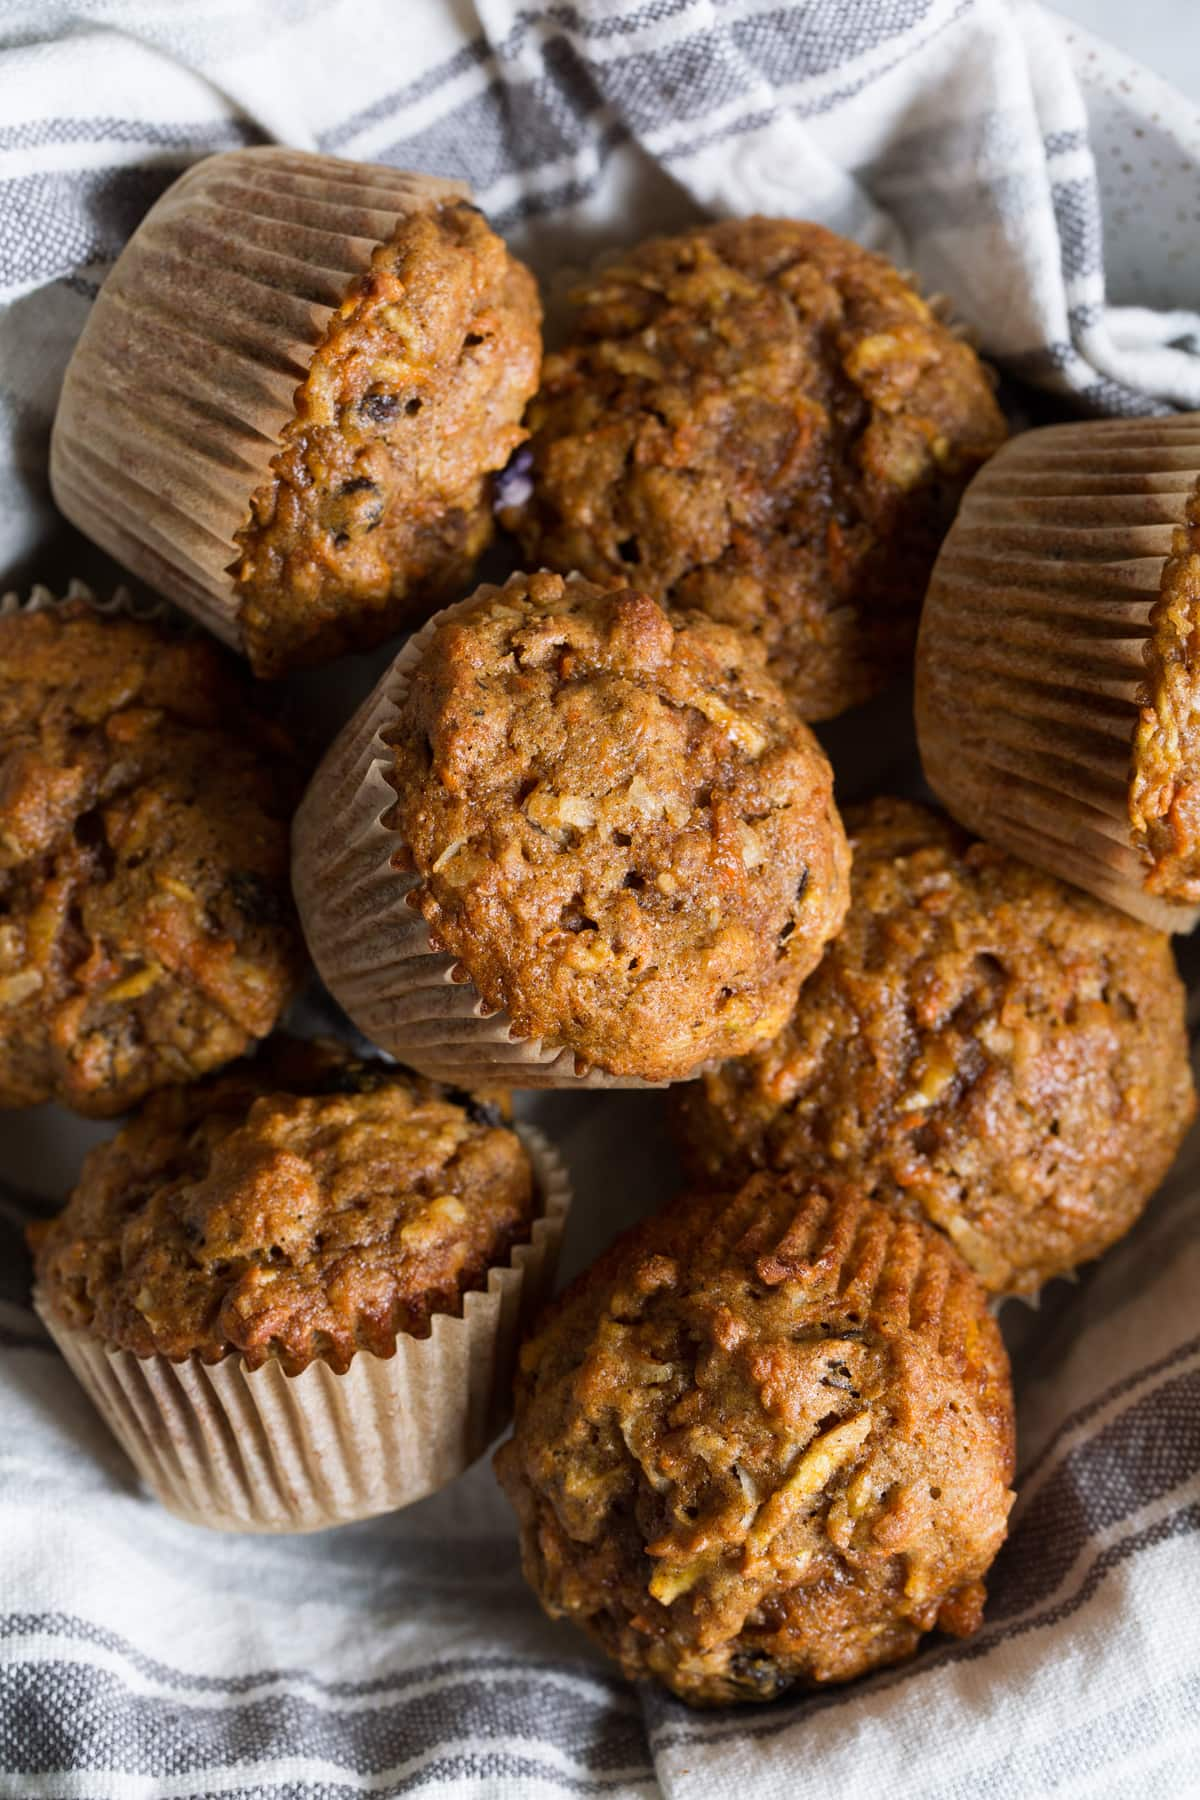 Morning glory muffins in a serving bowl with a kitchen towel.